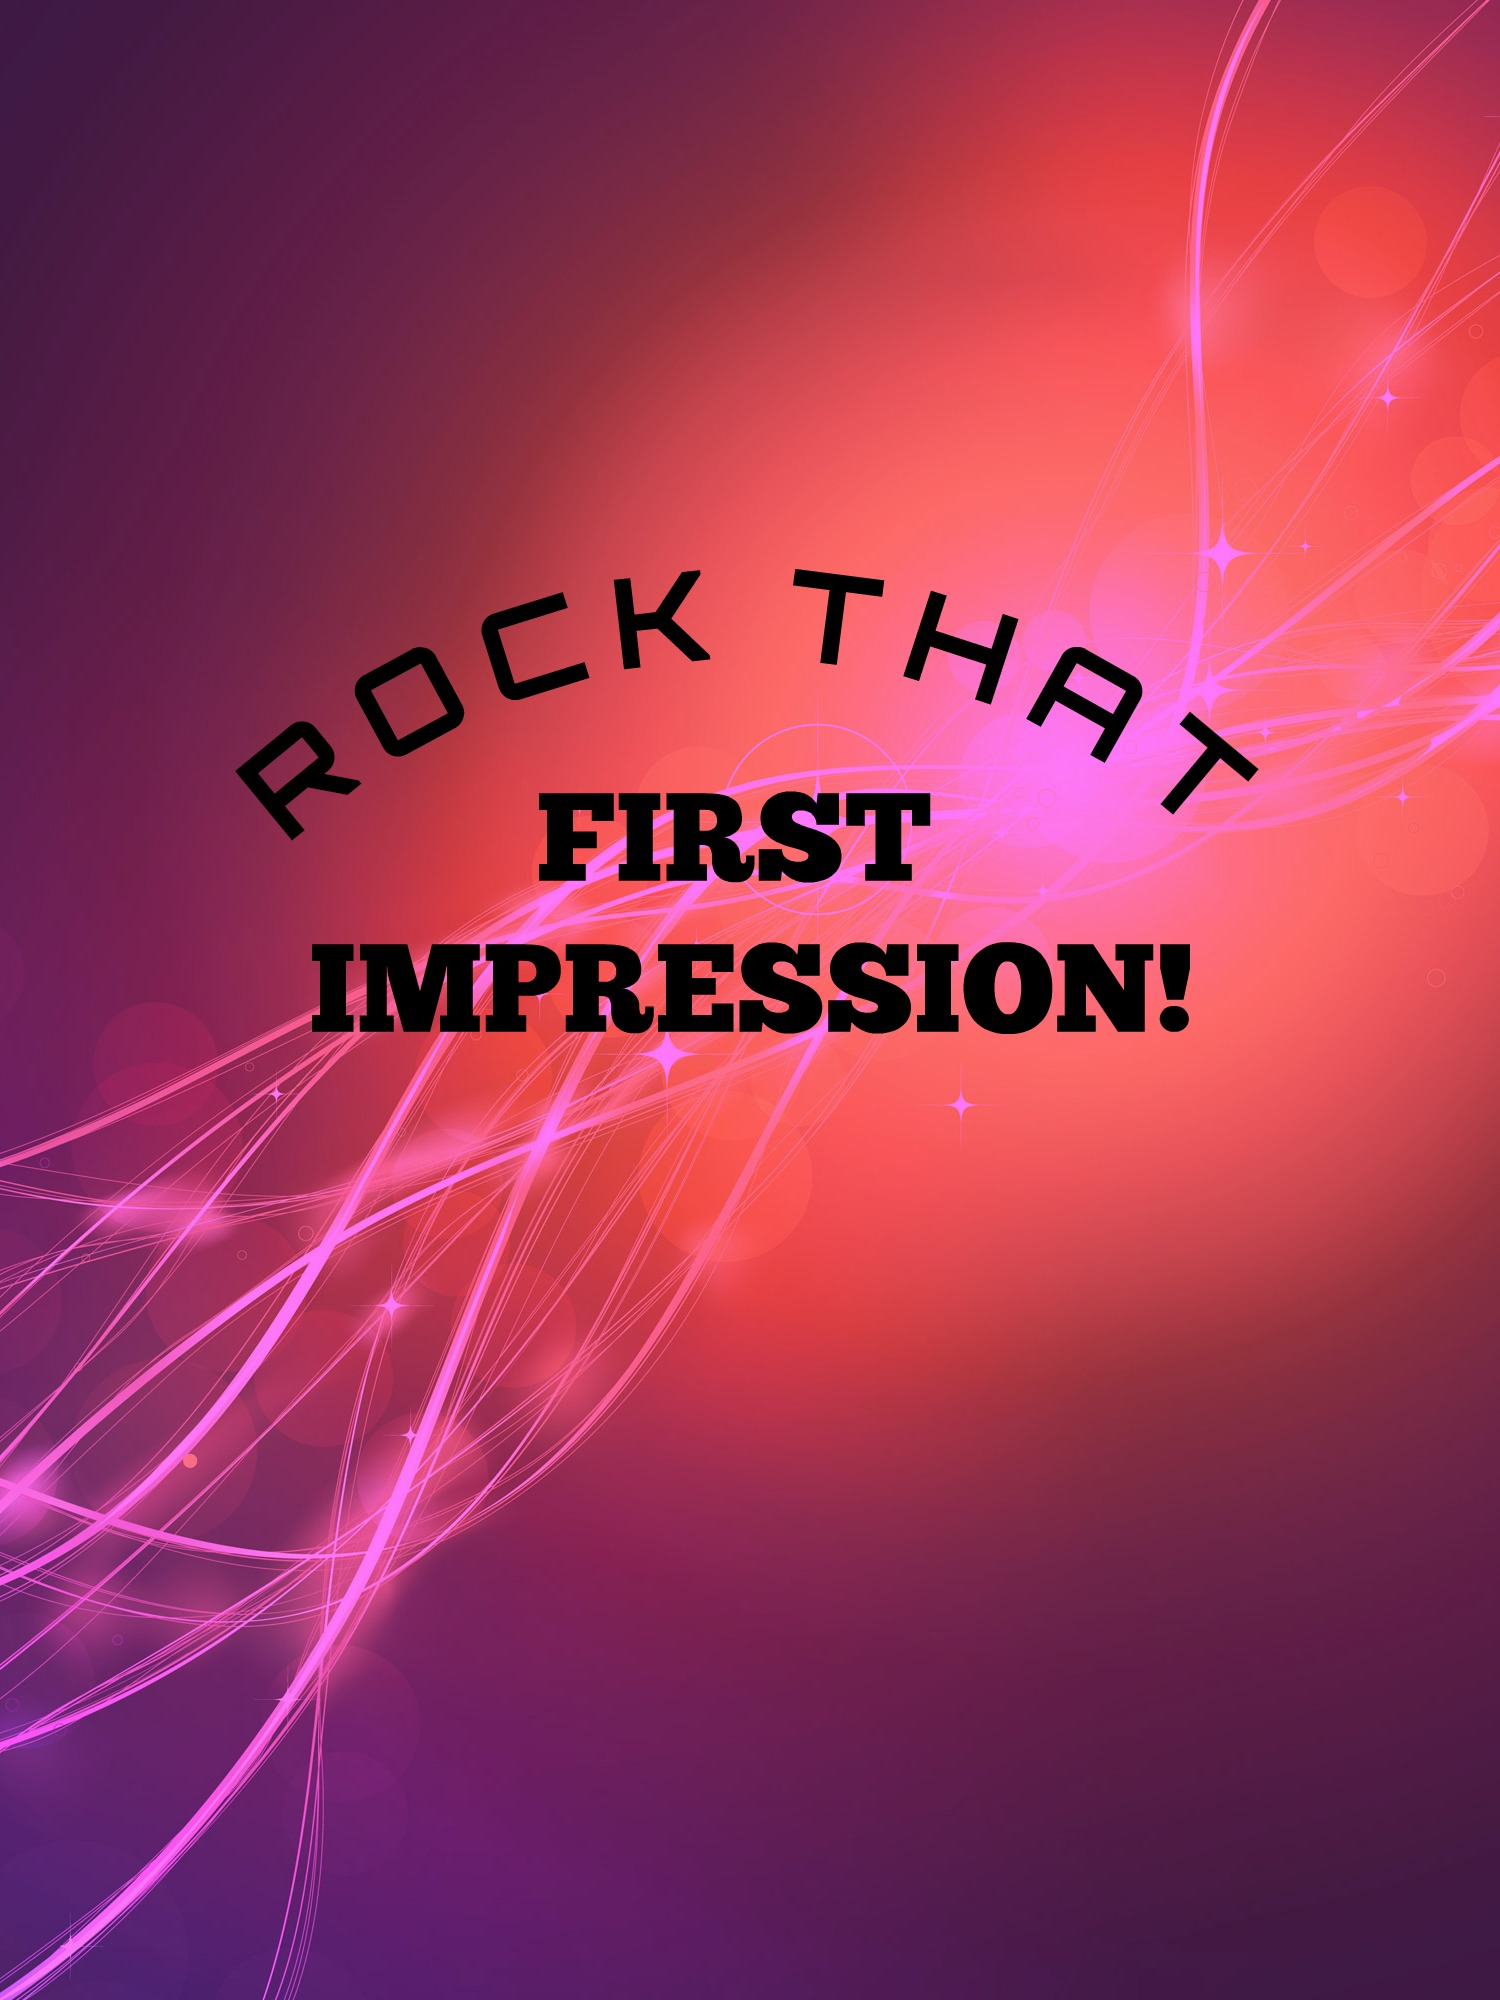 Style NOW!  Rock that first impression!